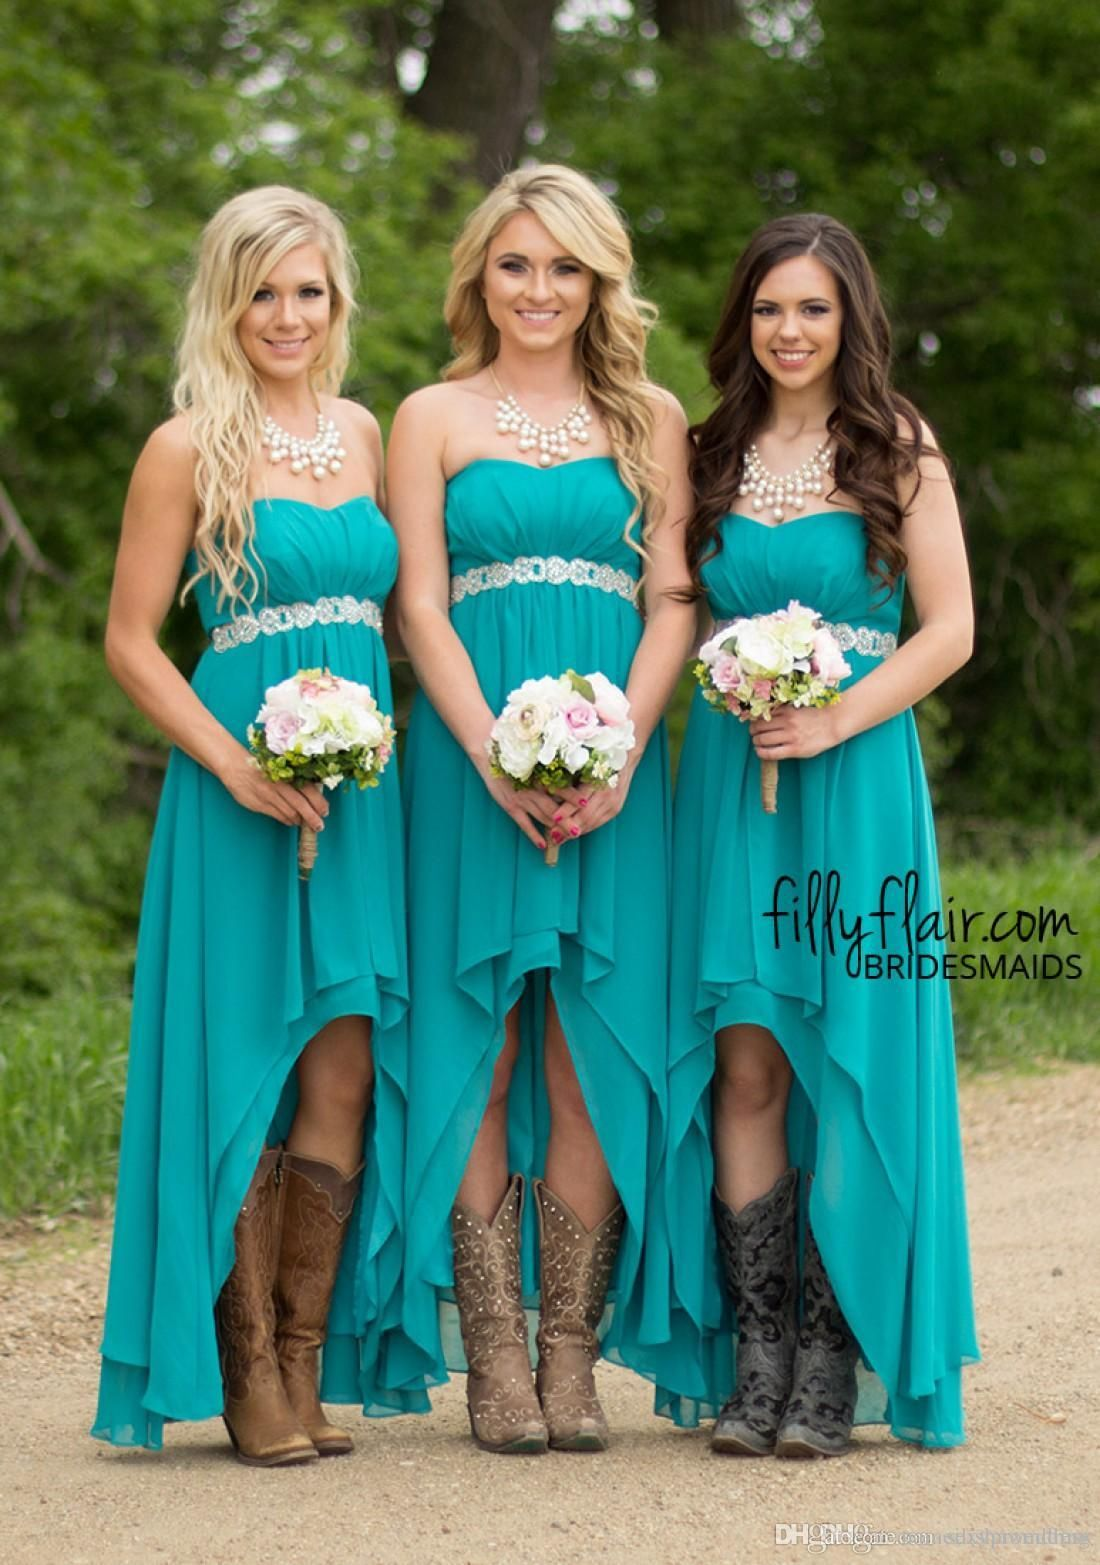 bb3a75ed4cb Modest Maternity Short Bridesmaid Dresses 2015 Cheap Under 100 Turquoise  Western Country Wedding Party Guest Wear Plus Size High Low Chiffon